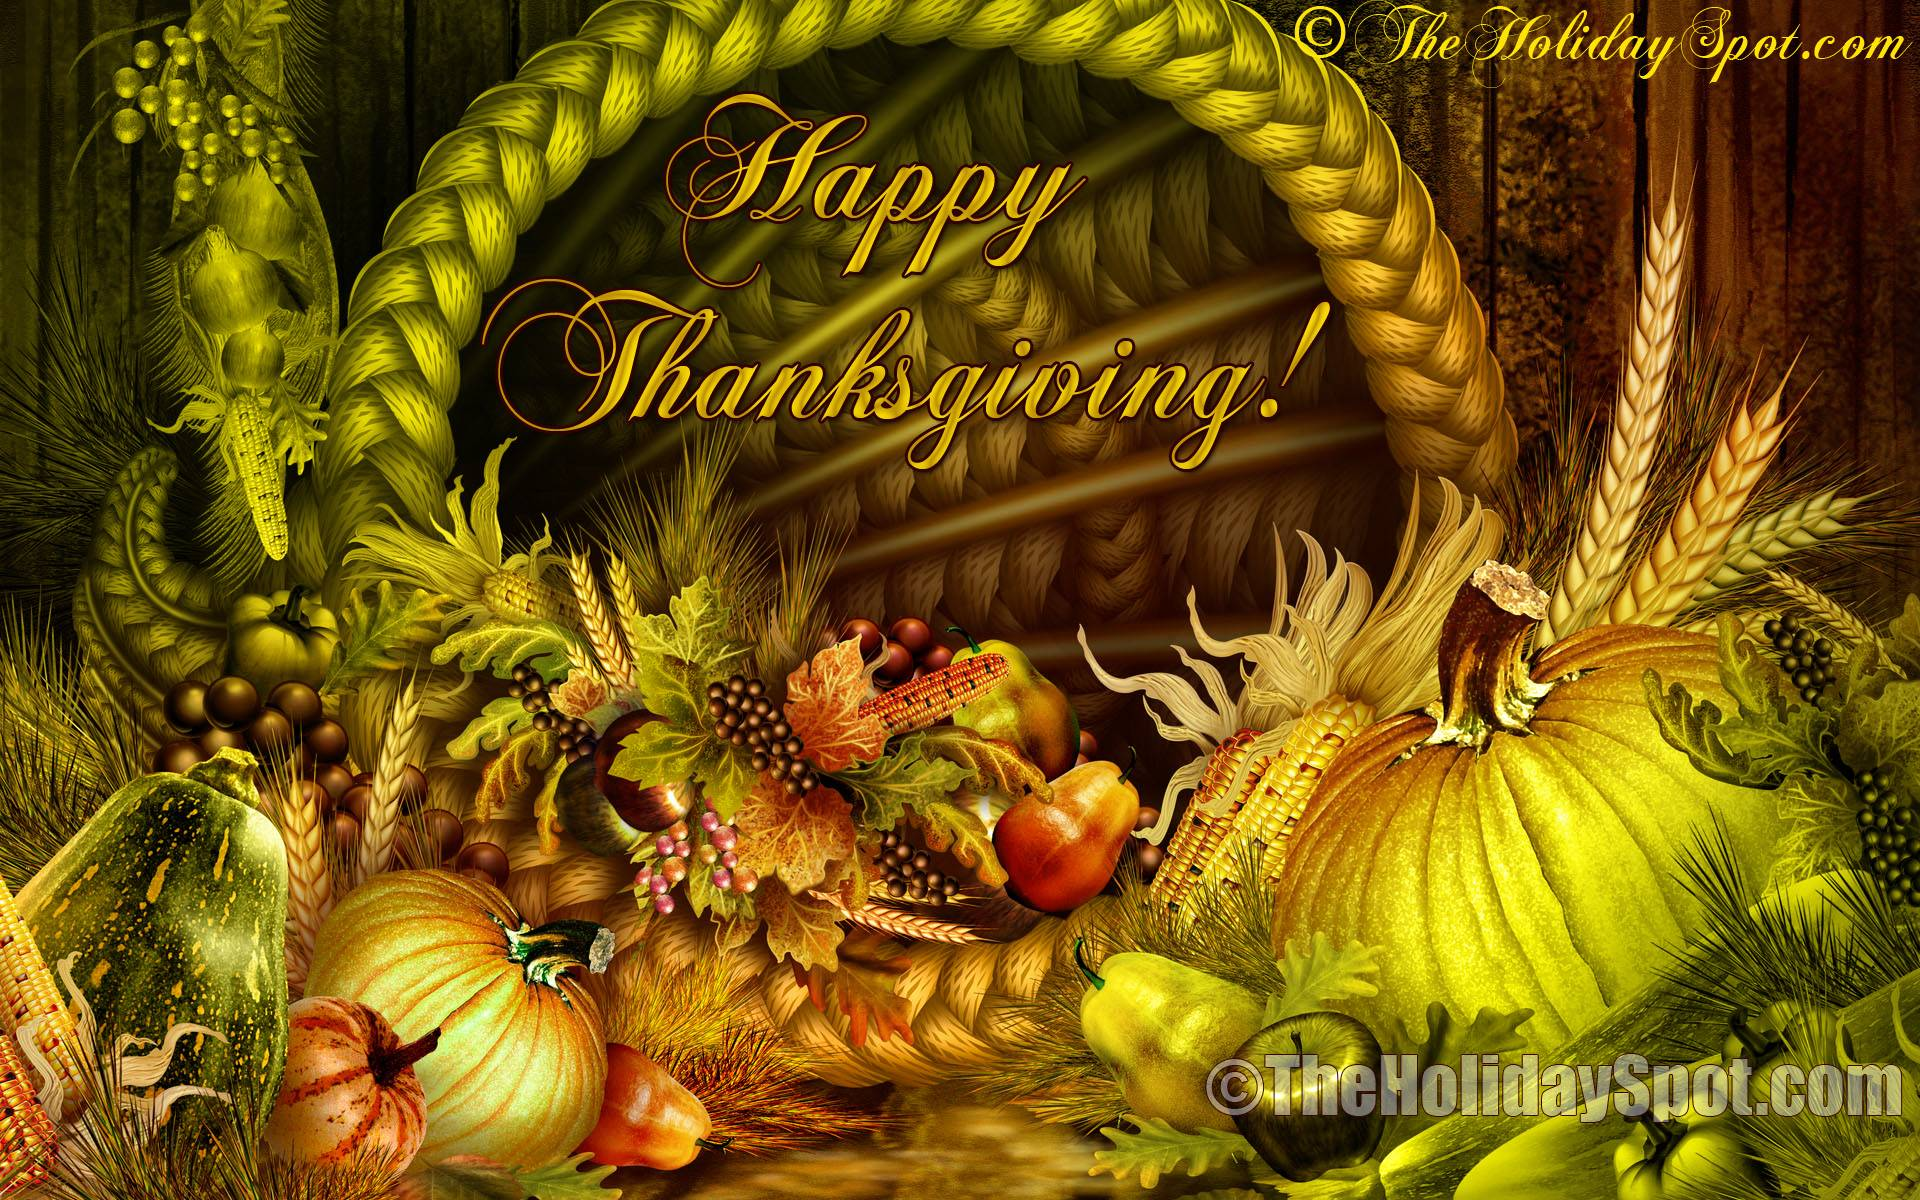 Cool Happy Thanksgiving Wallpaper For Desktop 11 - diarioveaonline.com